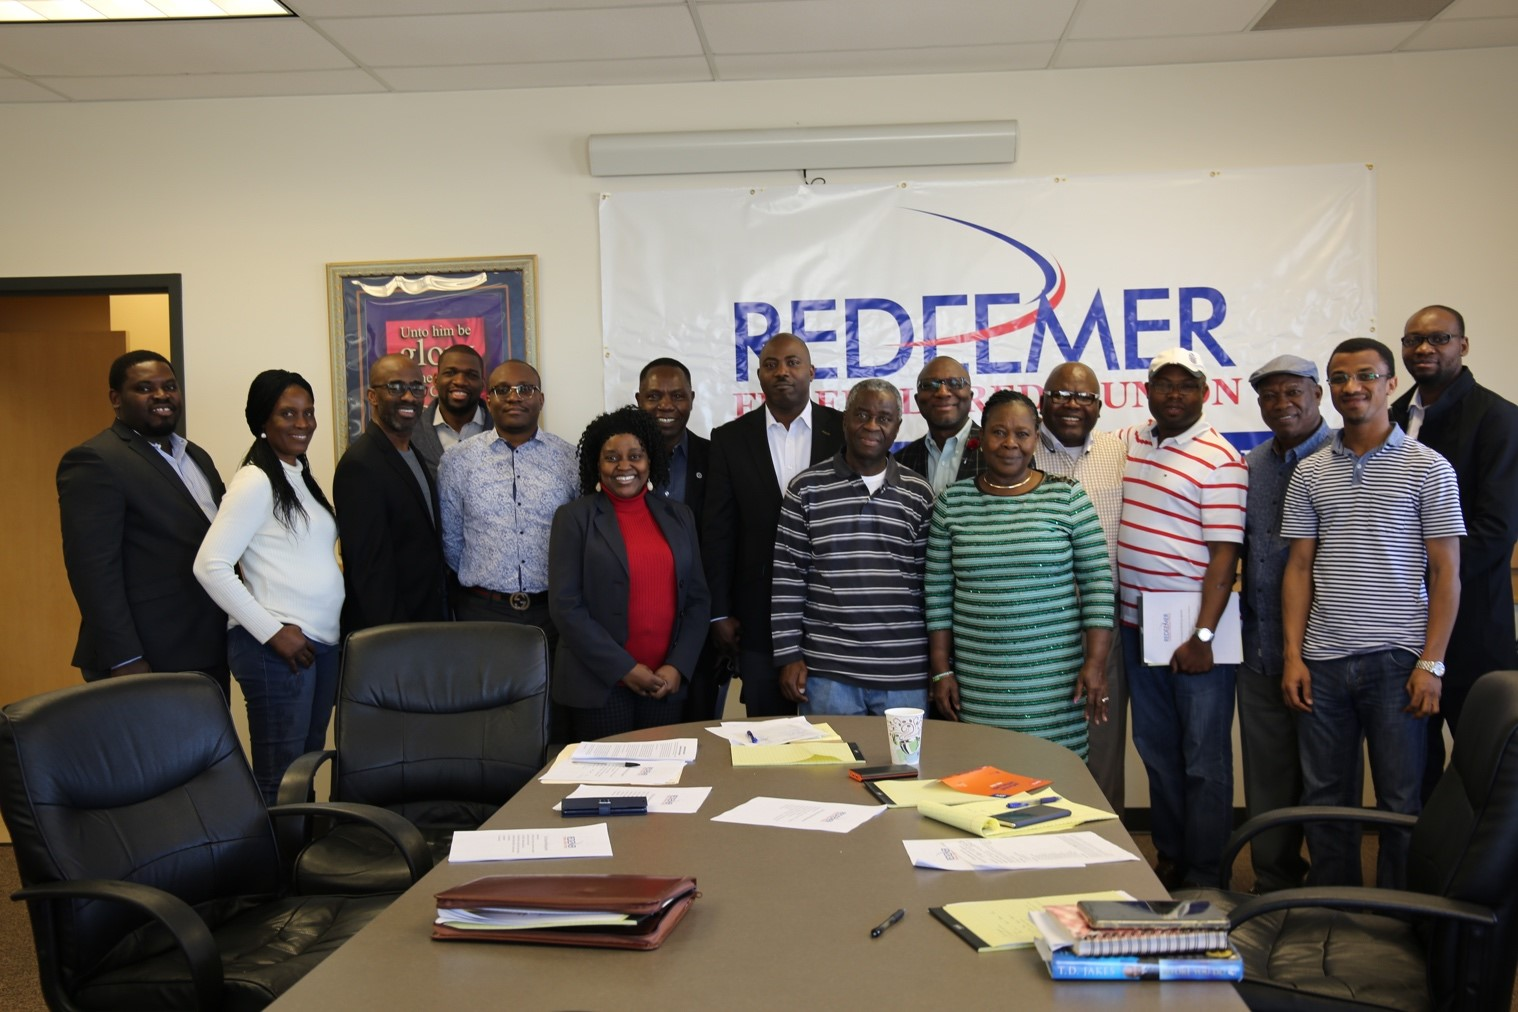 The Redeemer Federal Credit Union